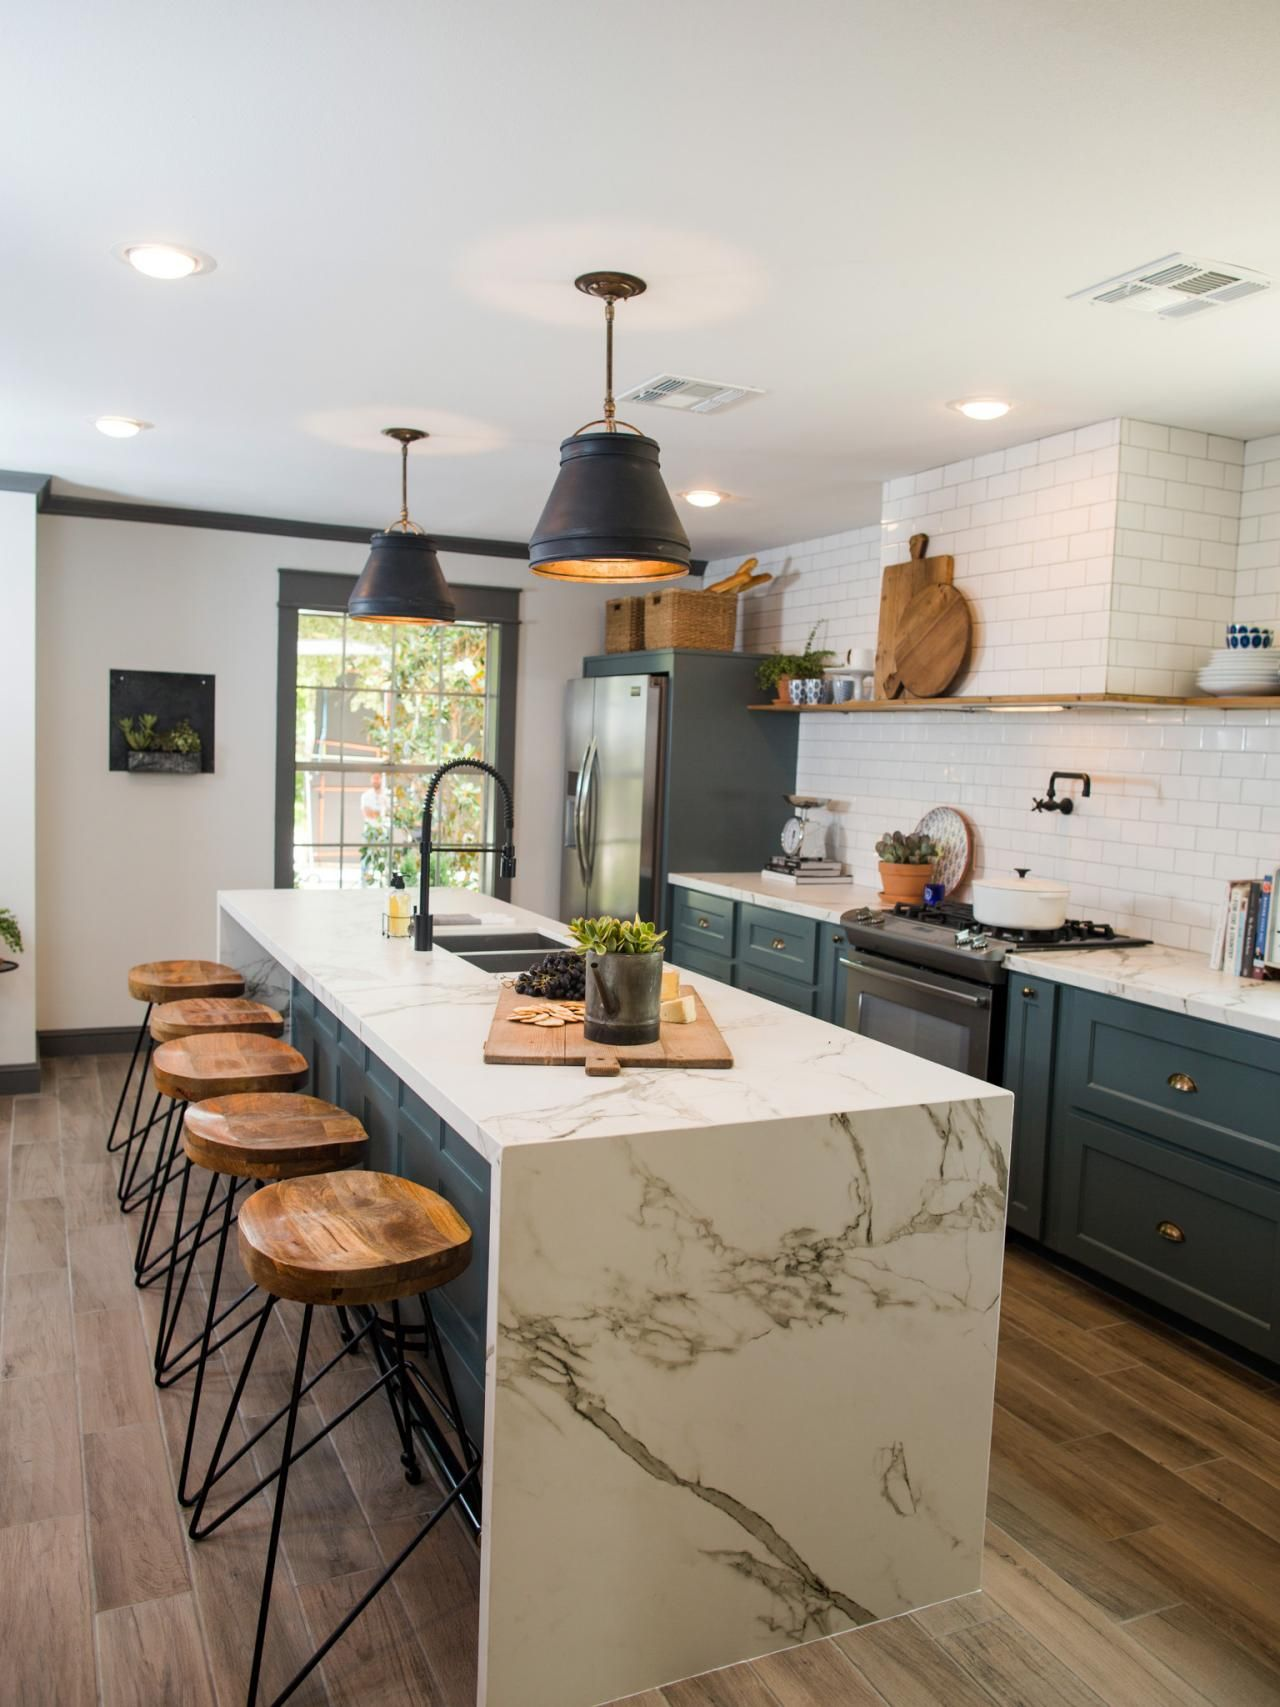 The 10 Best Cities to Purchase a Fixer Upper